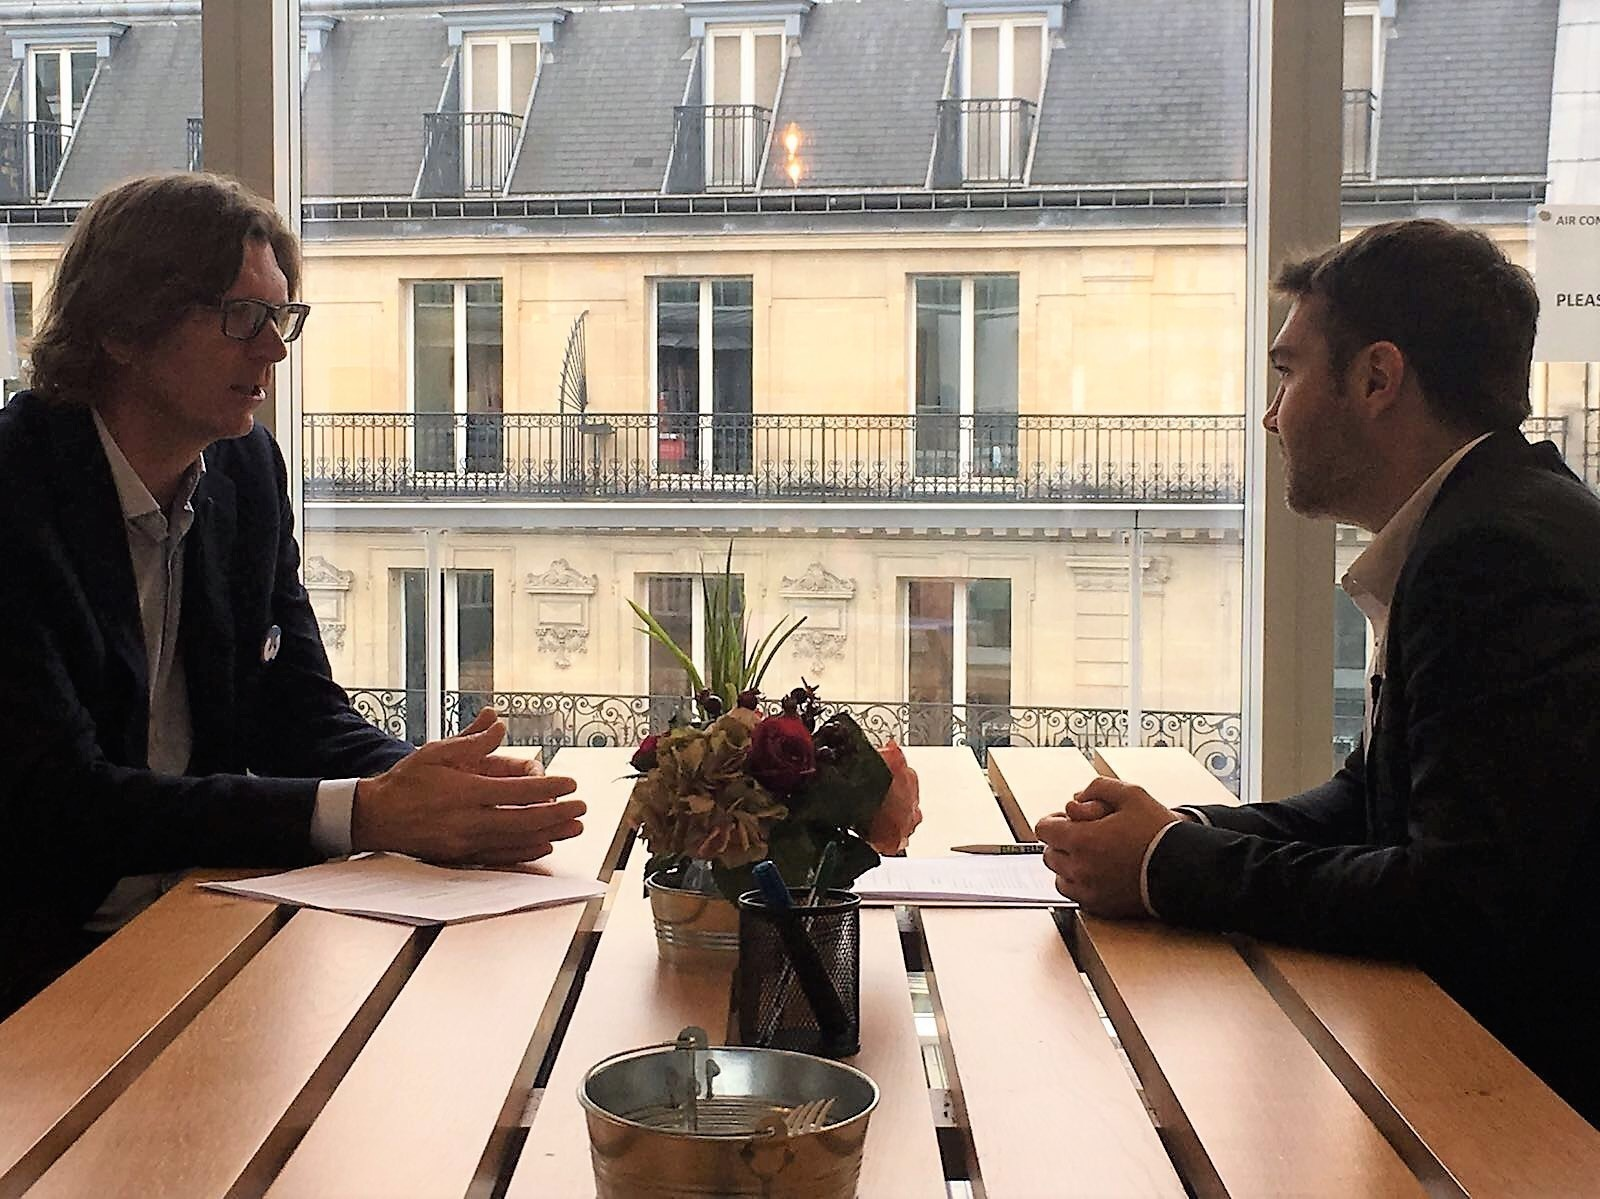 Meeting with Niklas Zennstrom, Europe connector for WONDERLEON in Paris